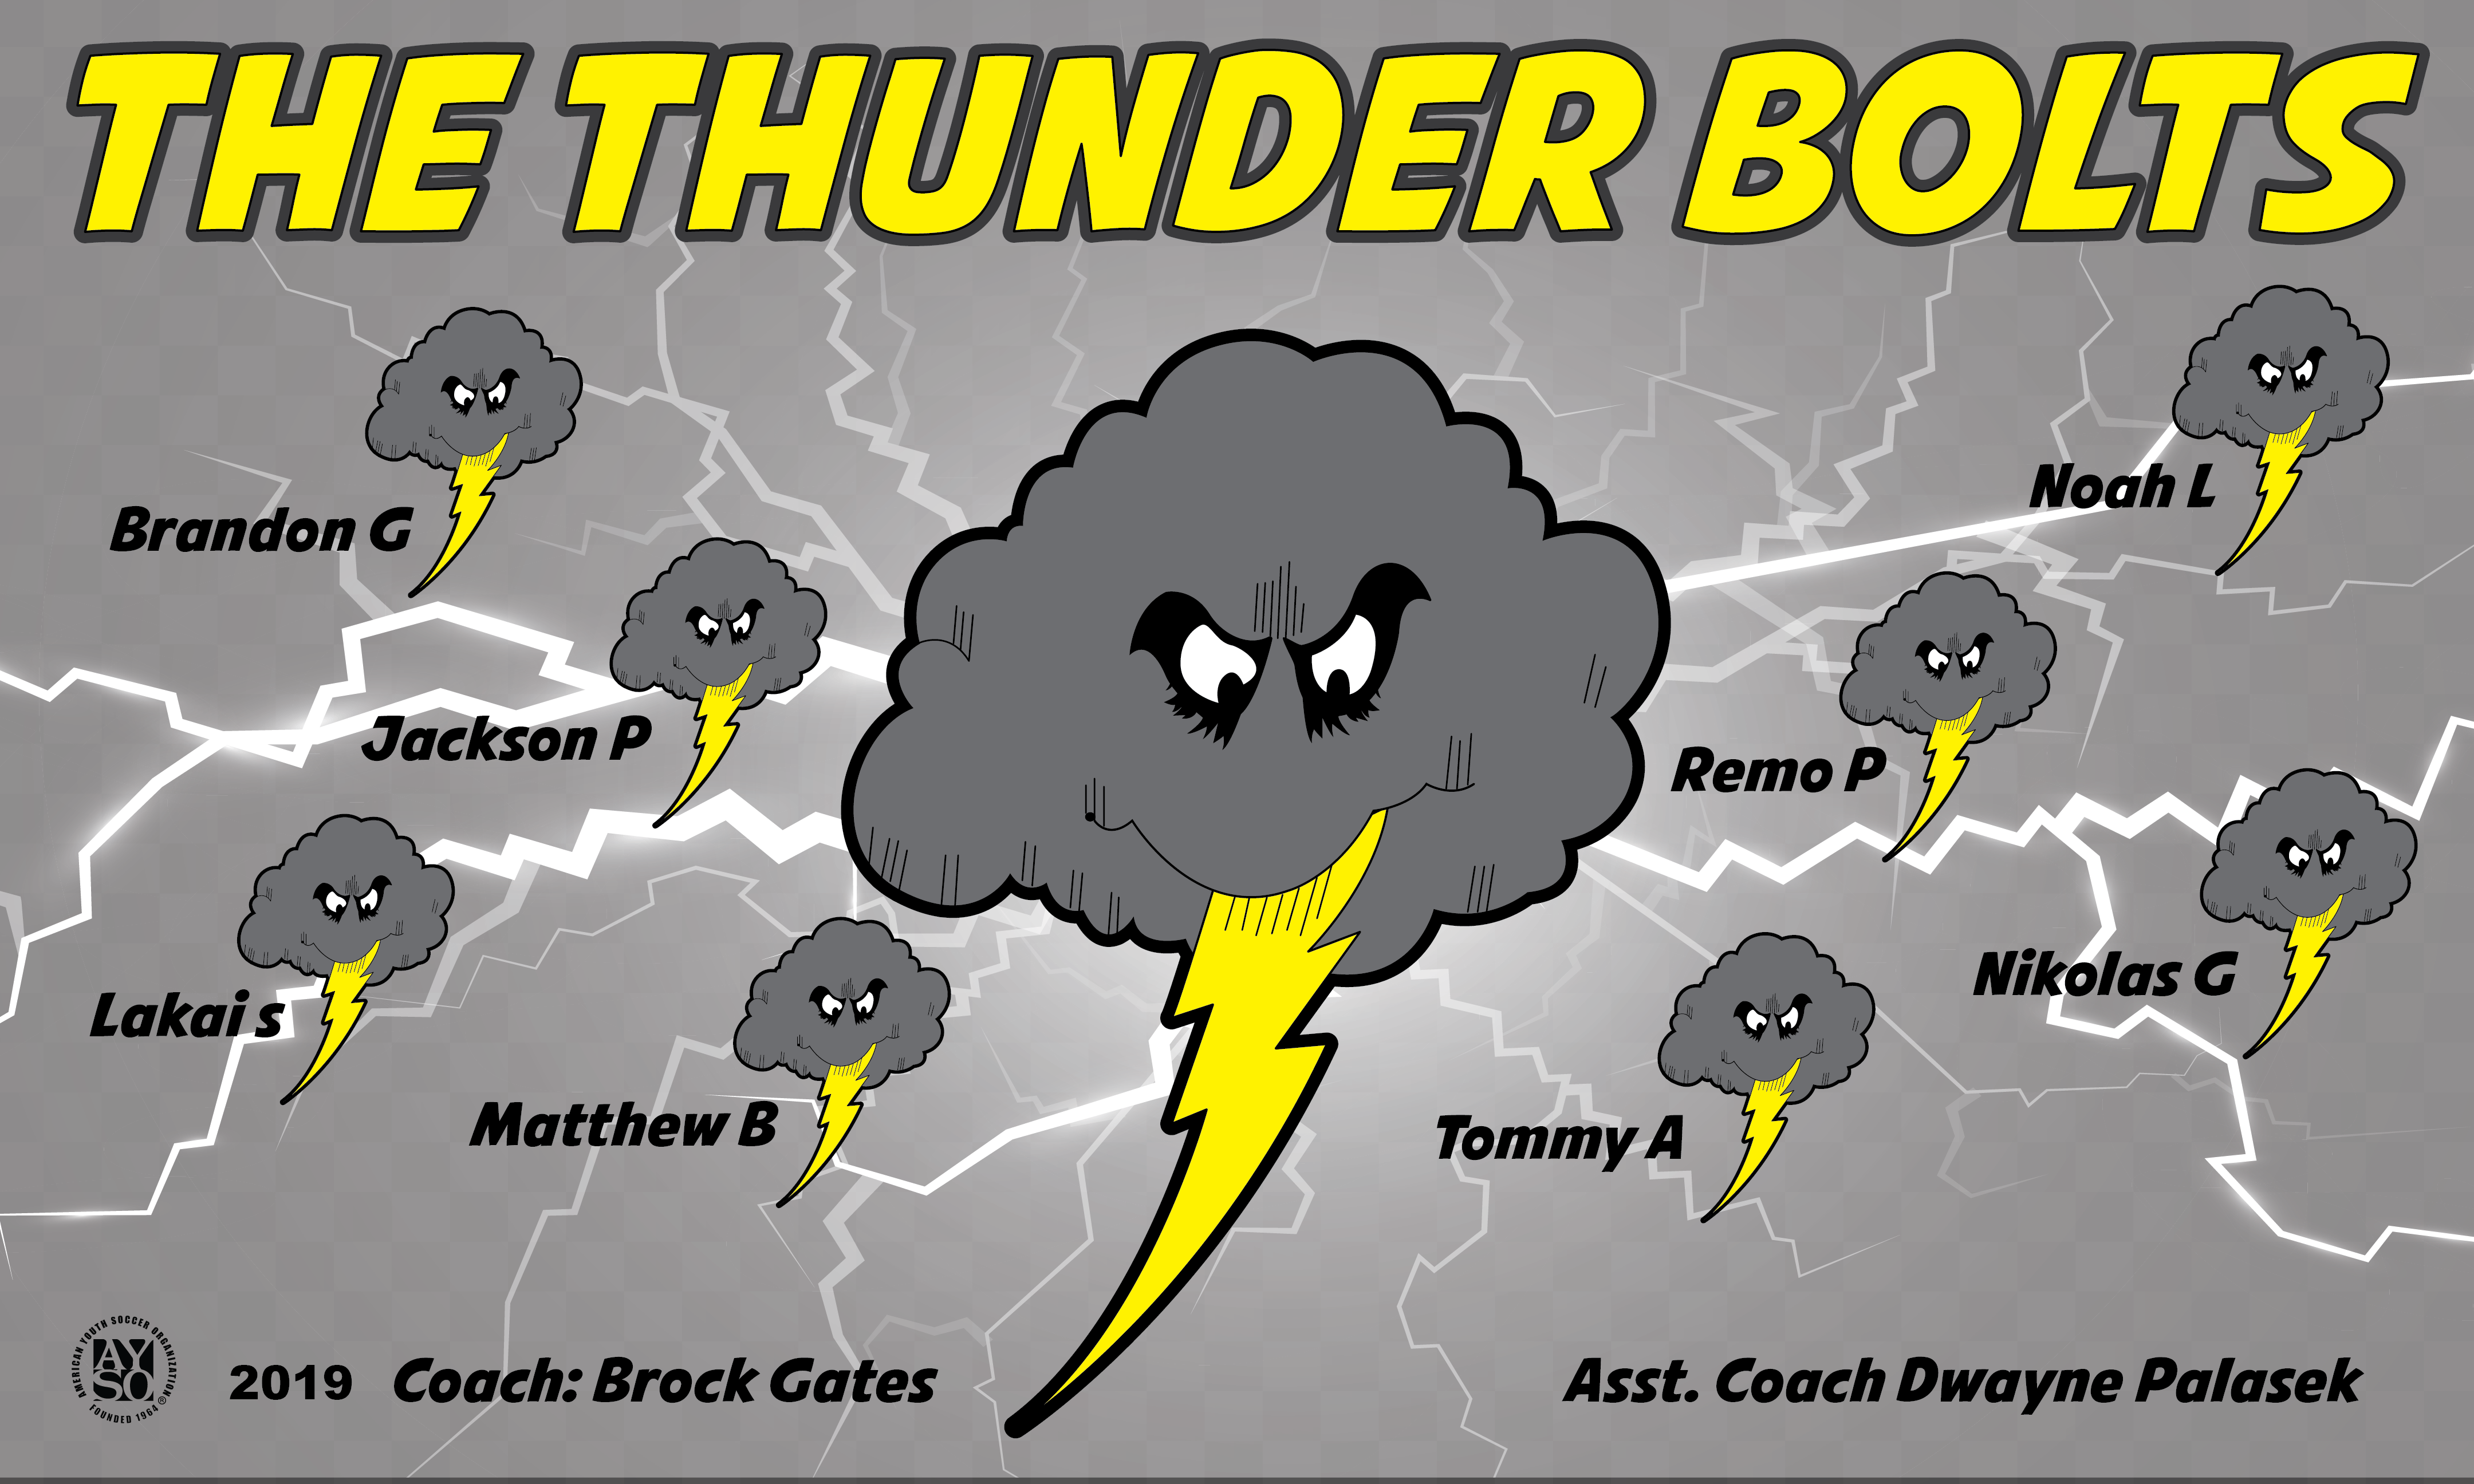 B2611 The Thunder Bolts 3X5 Banner